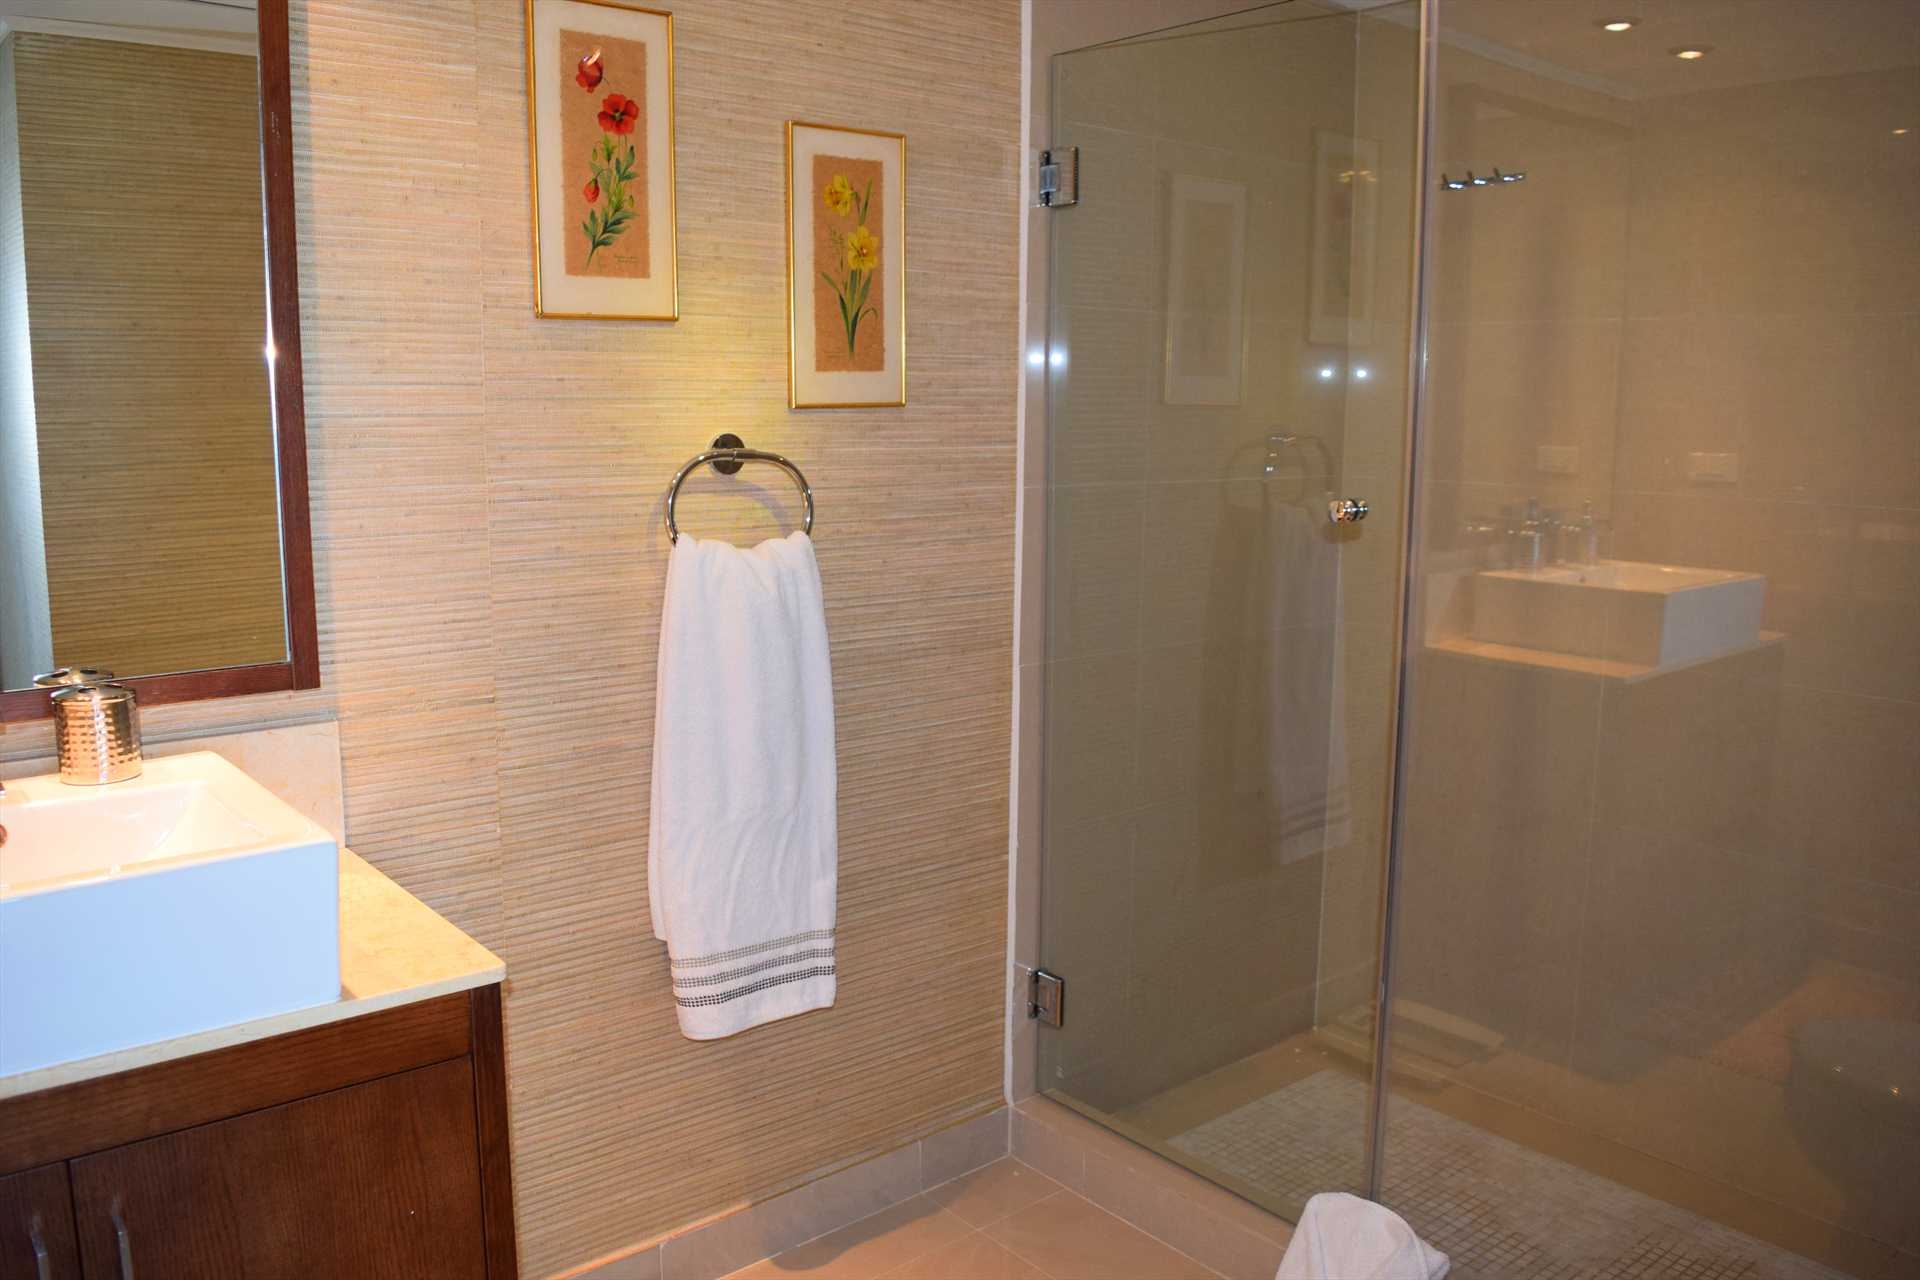 Master en-suite full bathroom with glass-enclosed shower area